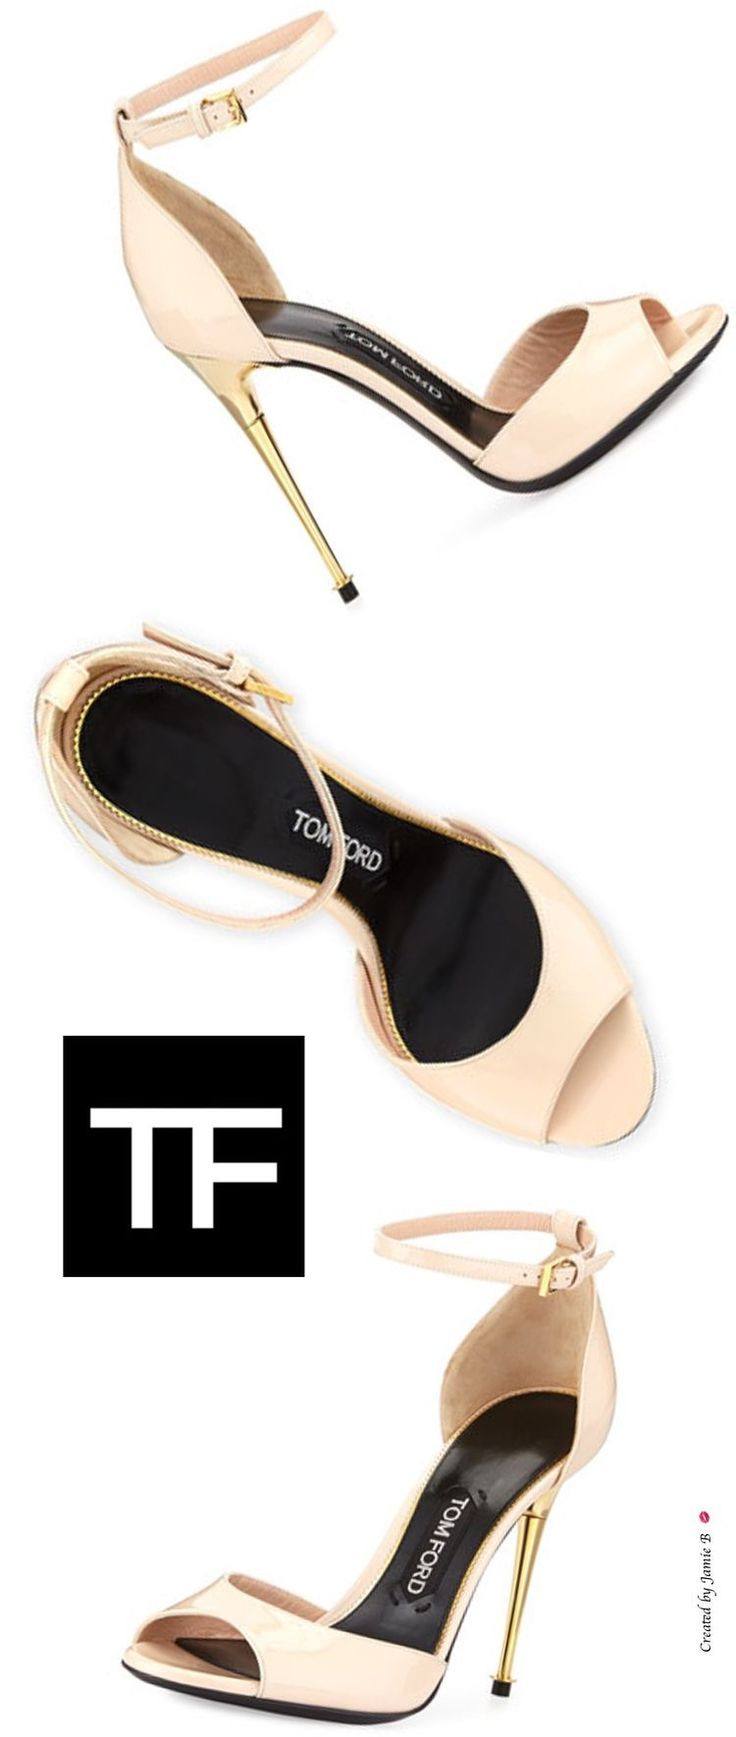 Tom Ford Embroidered Cutout Flats Manchester sale online cheap sale professional clearance store mHQ79L0ZJ